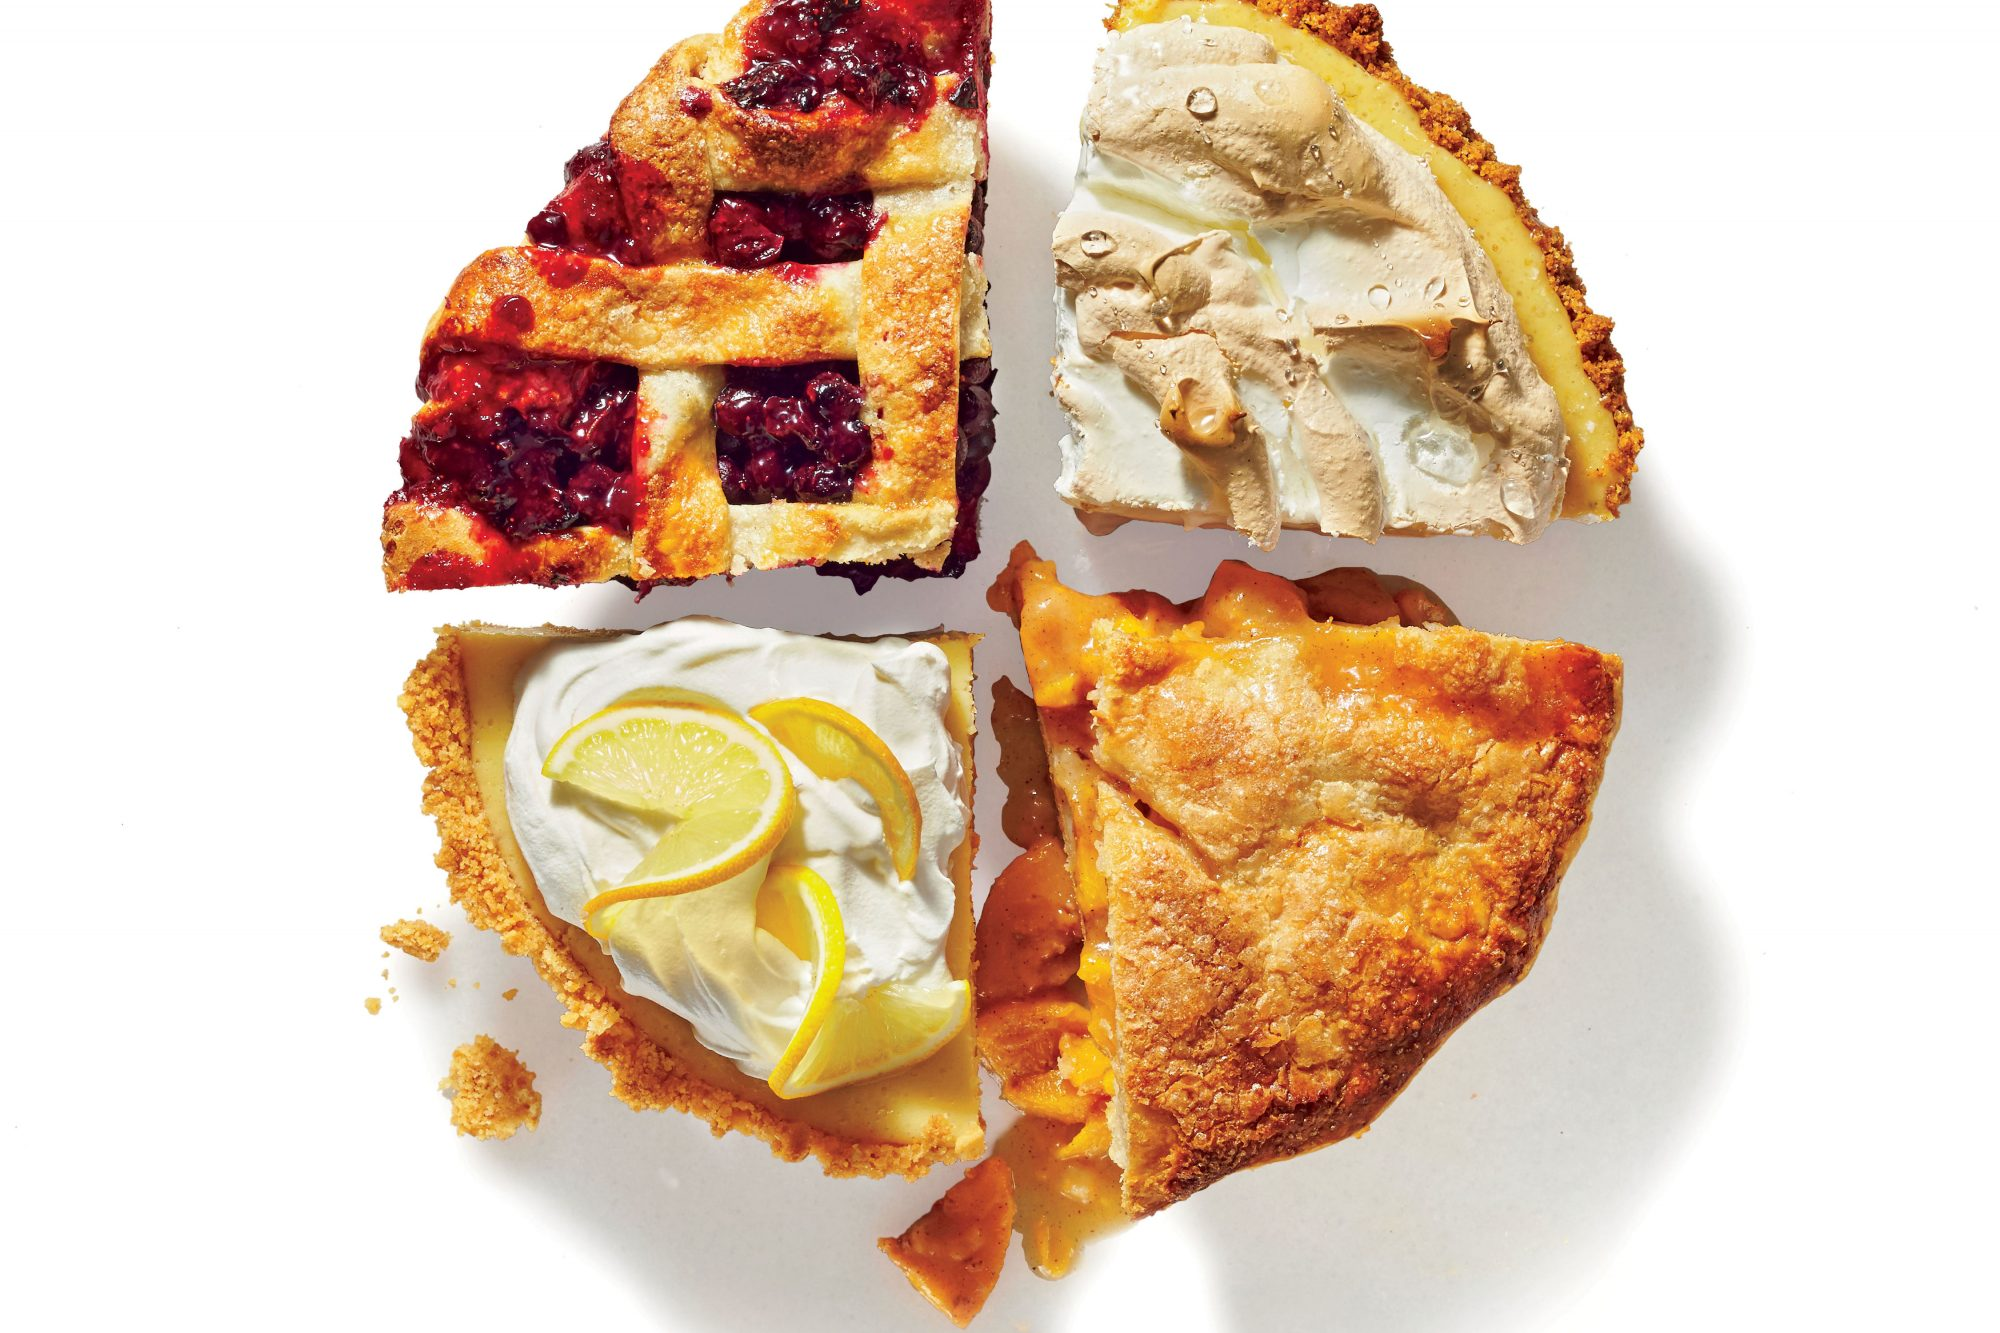 Fruit Pie, Peach Pie, Cookie Pie, and Meringue Pie